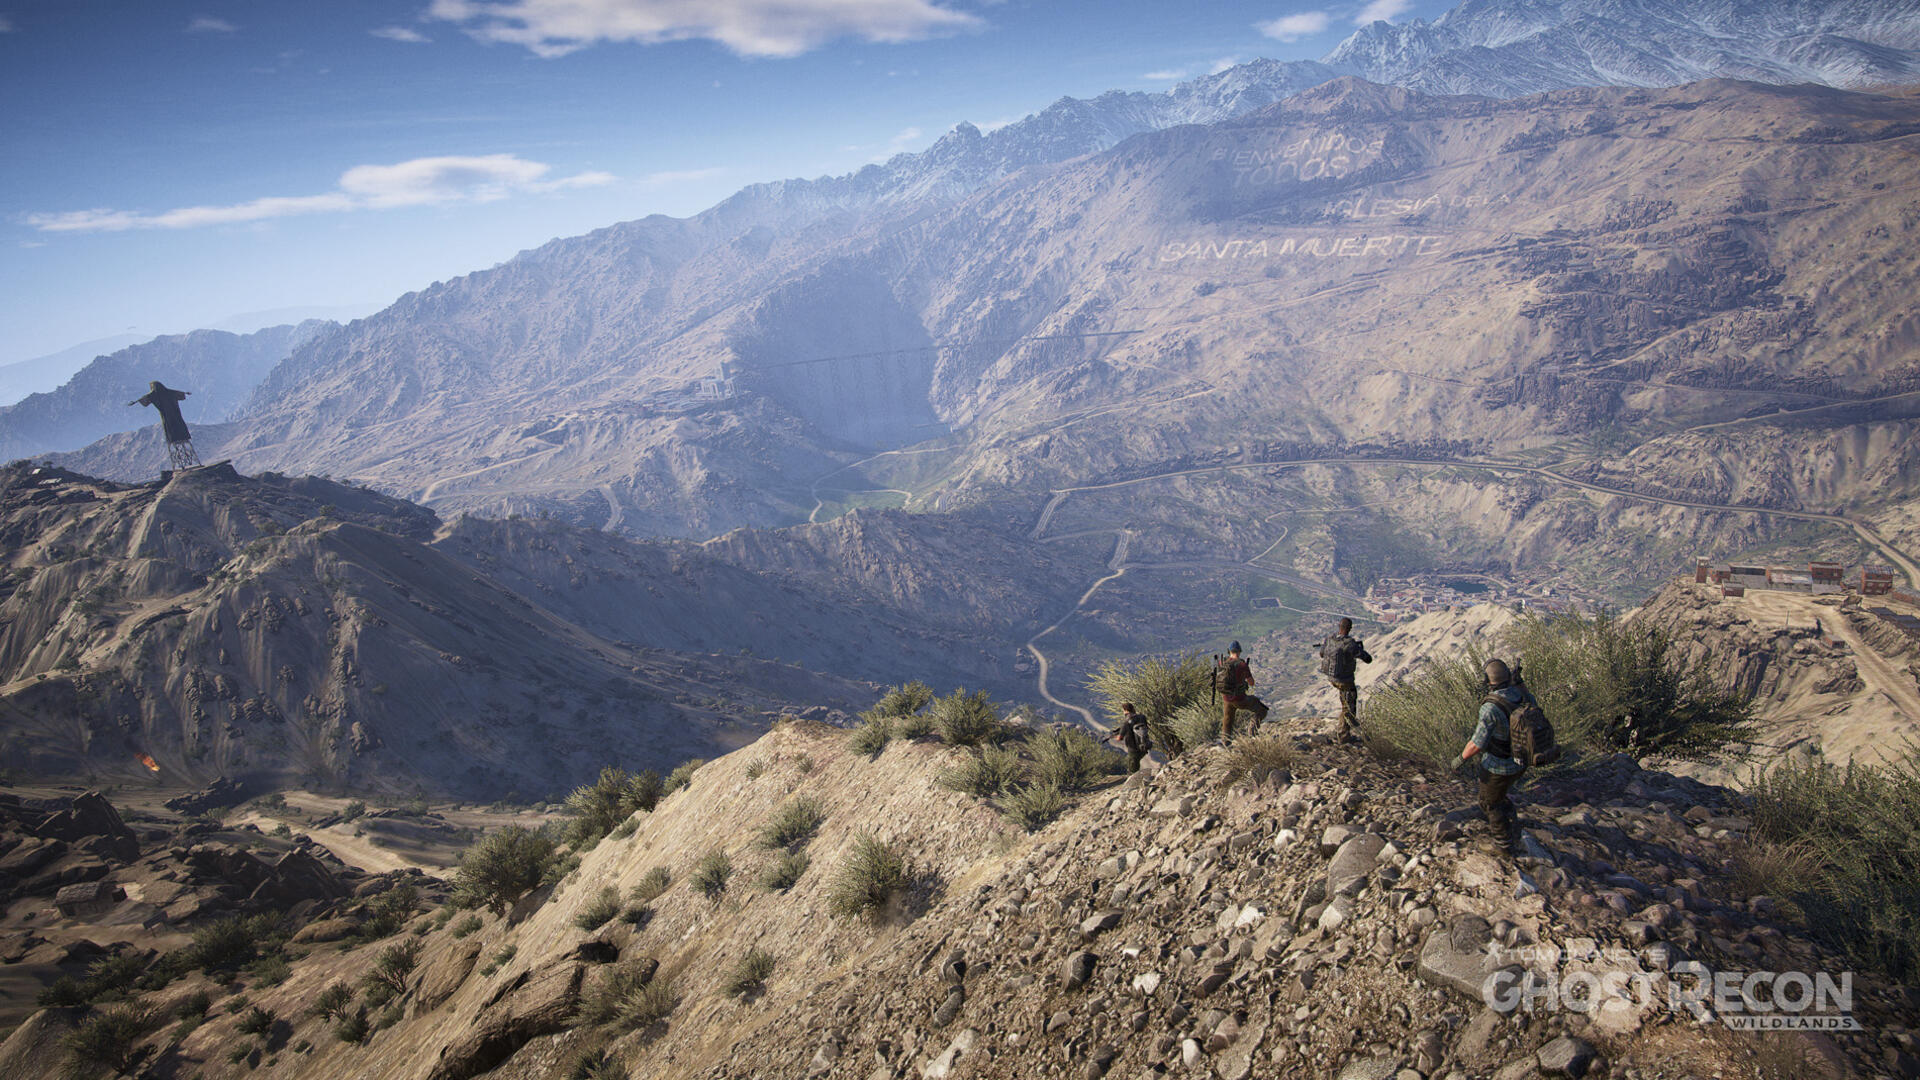 Ghost Recon Wildlands' Community Finds Glitches, Bugs, but Overall Feedback is Very Positive